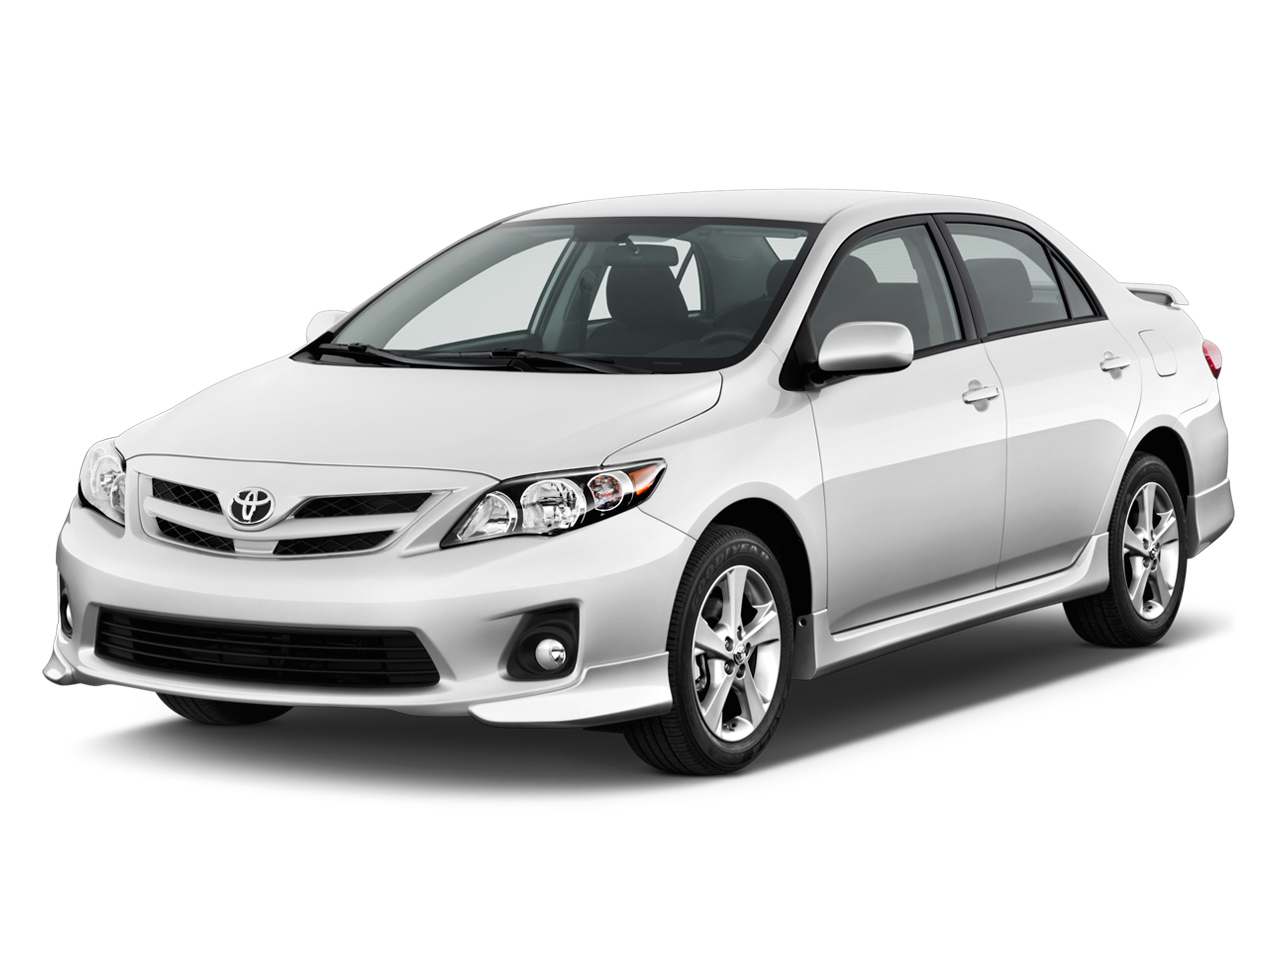 2012 toyota corolla safety review and crash test ratings. Black Bedroom Furniture Sets. Home Design Ideas